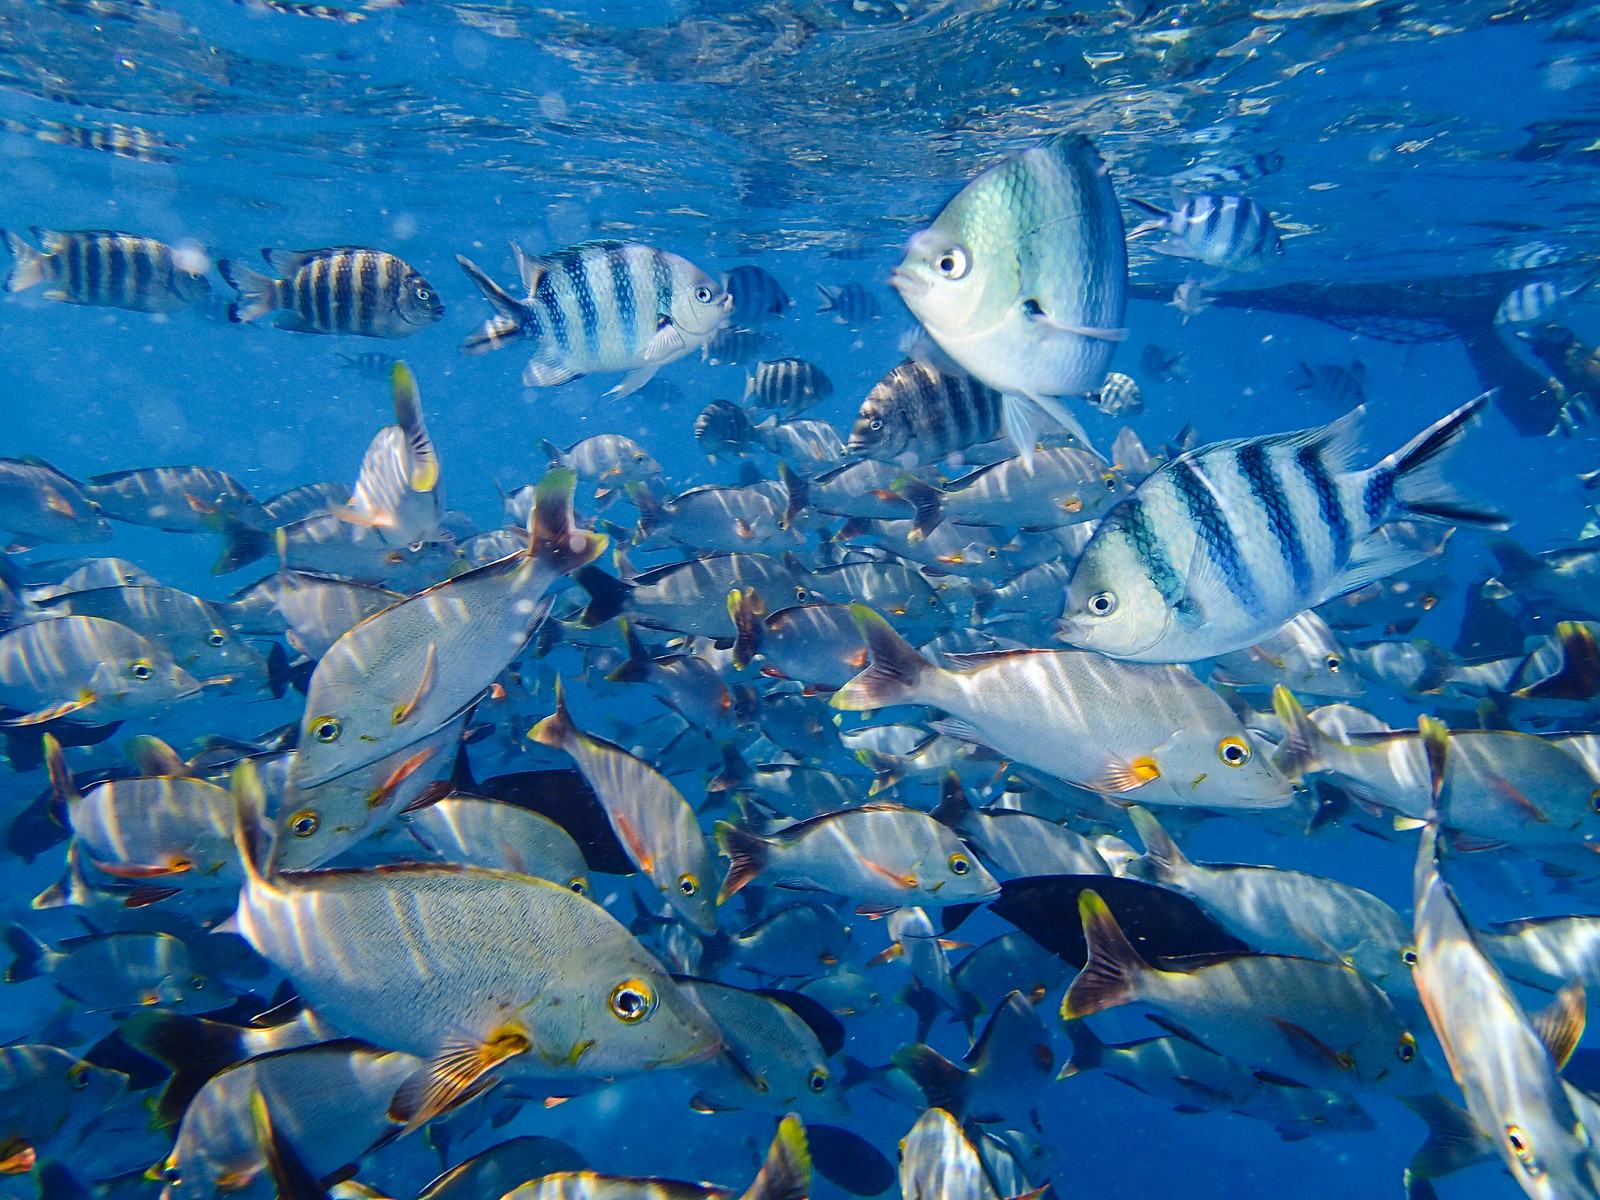 Rangiroa snorkeling offers plentiful and very colorful fish. It's a fun Silversea cruise excursion.